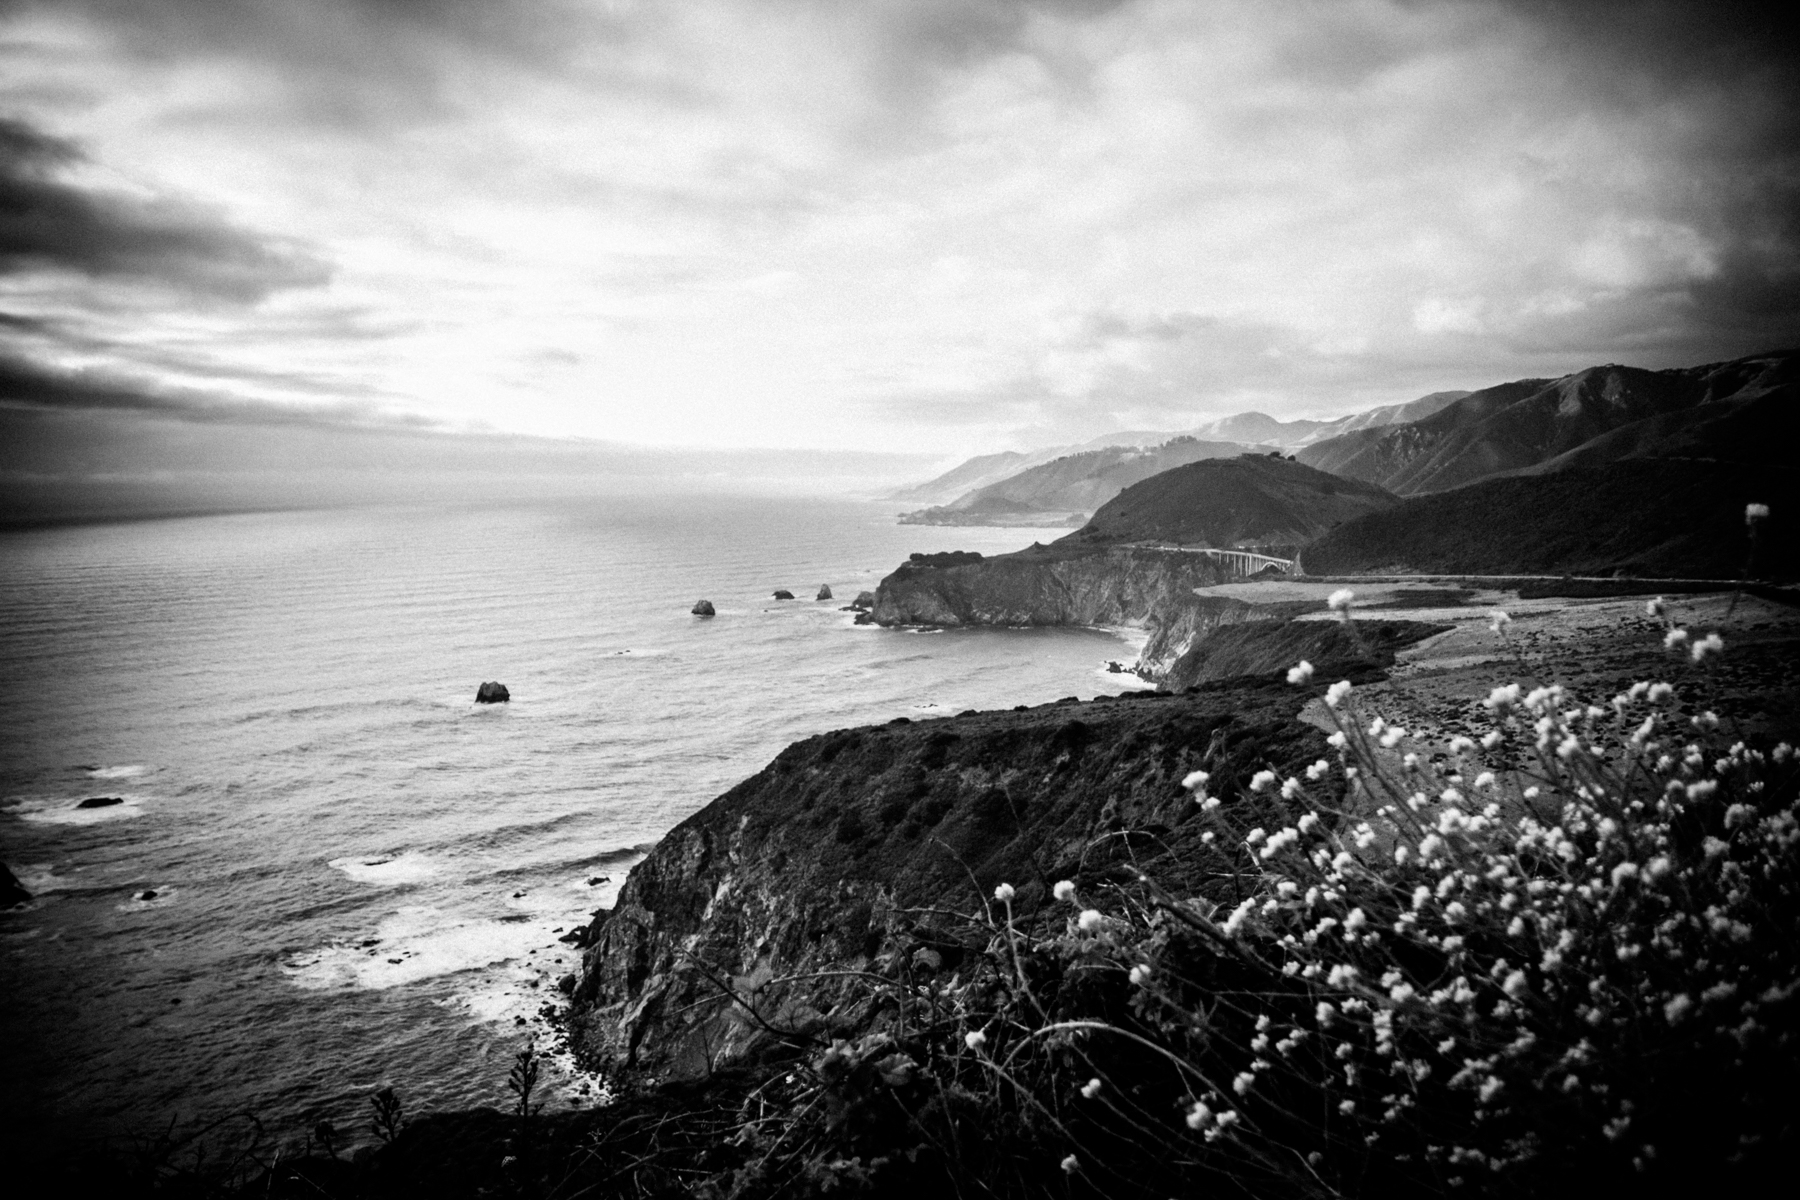 My old home_Bixby, Big Sur ©2018 Lisa Berman